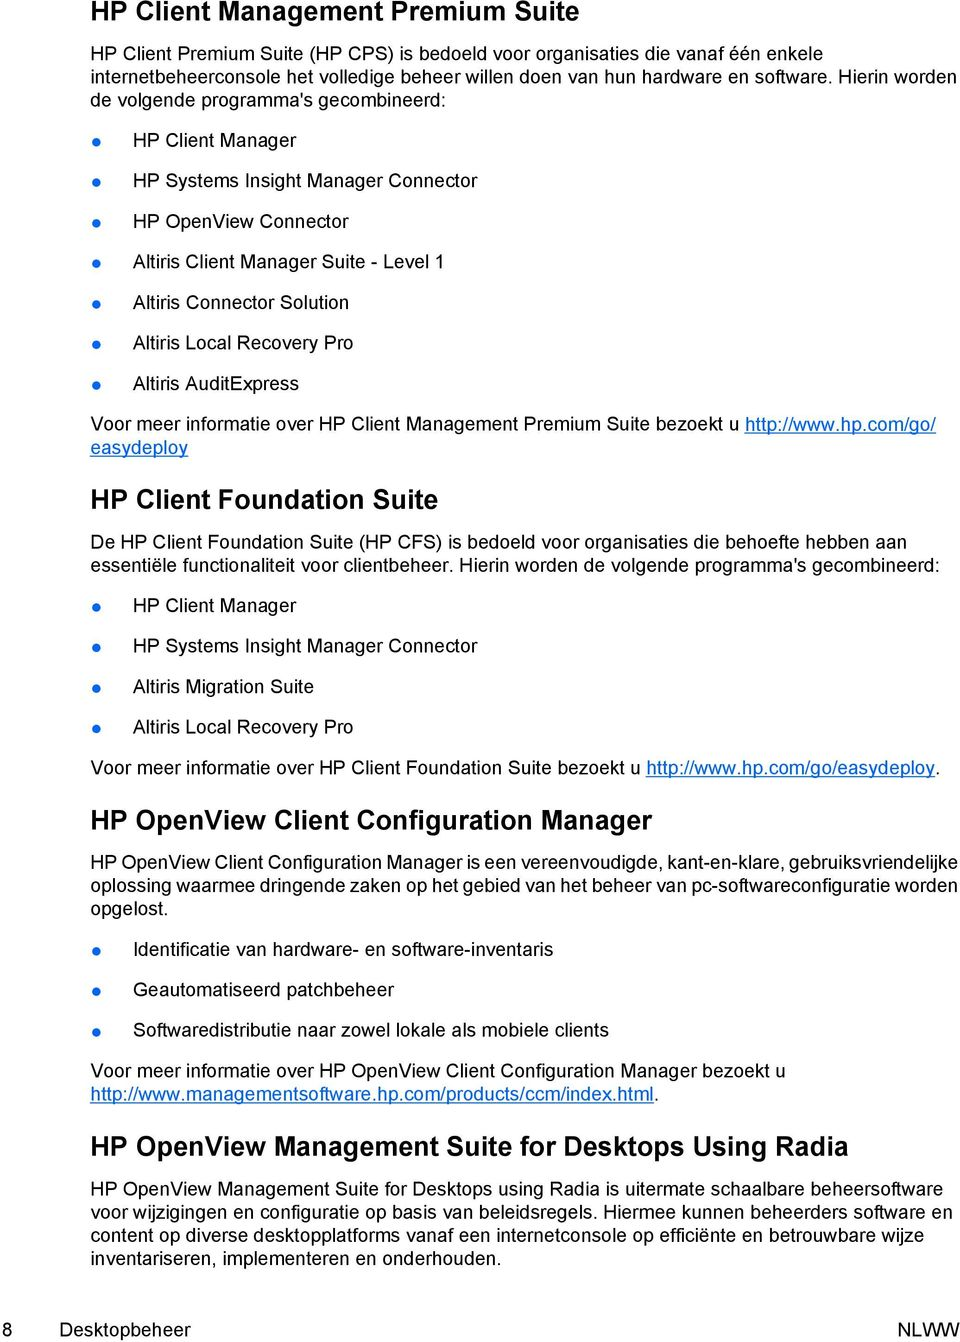 Hierin worden de volgende programma's gecombineerd: HP Client Manager HP Systems Insight Manager Connector HP OpenView Connector Altiris Client Manager Suite - Level 1 Altiris Connector Solution